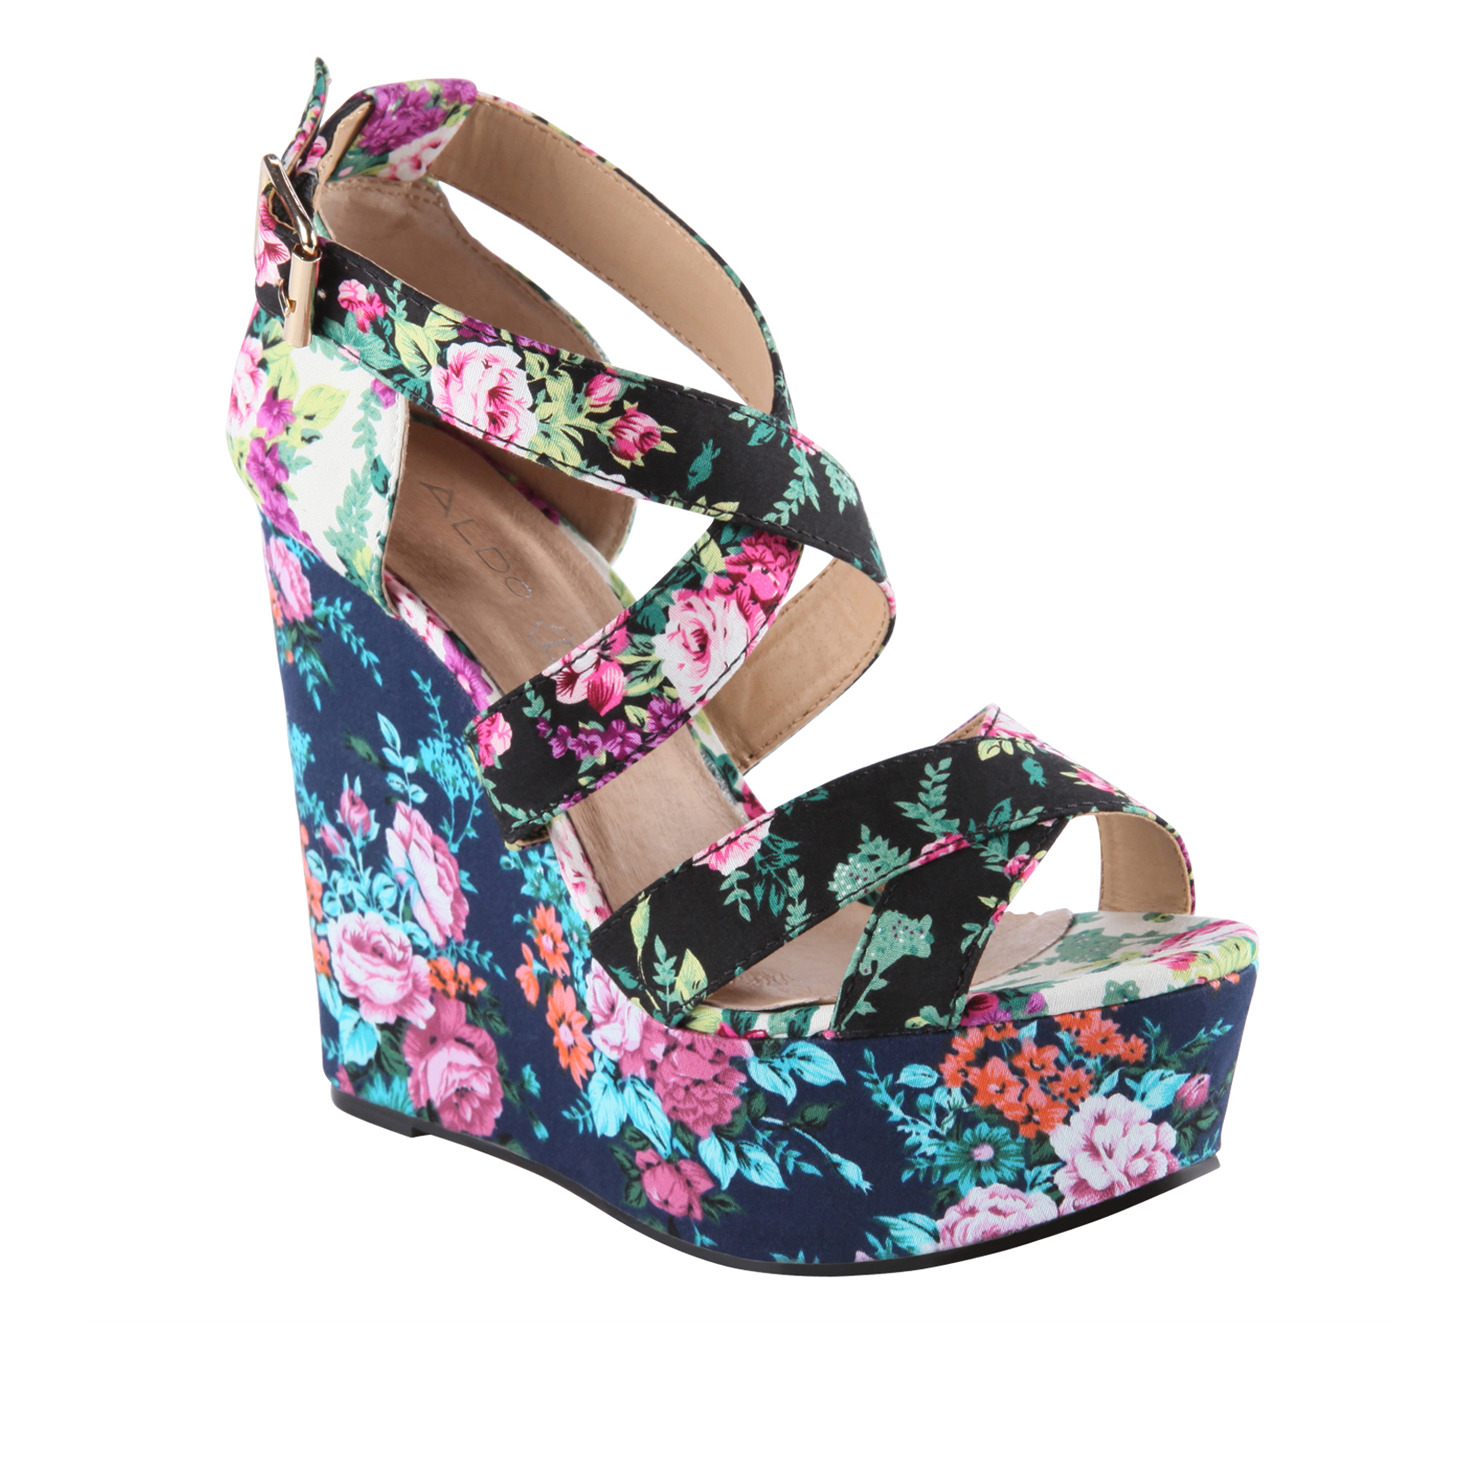 Item Of The Day Aldo Rinks Floral Wedge Mlts Magazine